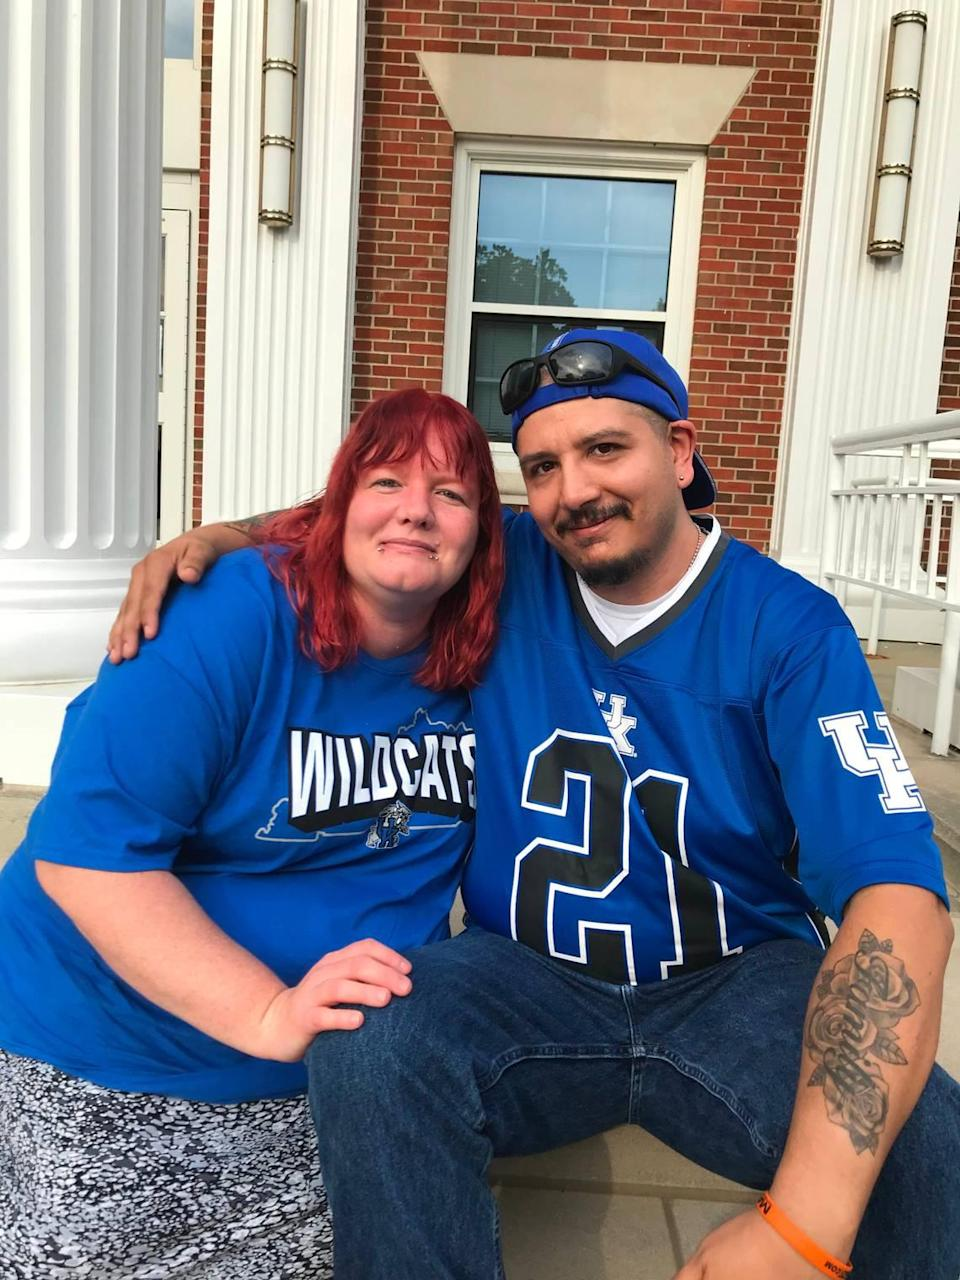 Monica and Jonathan Eaglefeather attended the Kentucky basketball players' Fans First Fan Event at Transylvania University on Saturday.